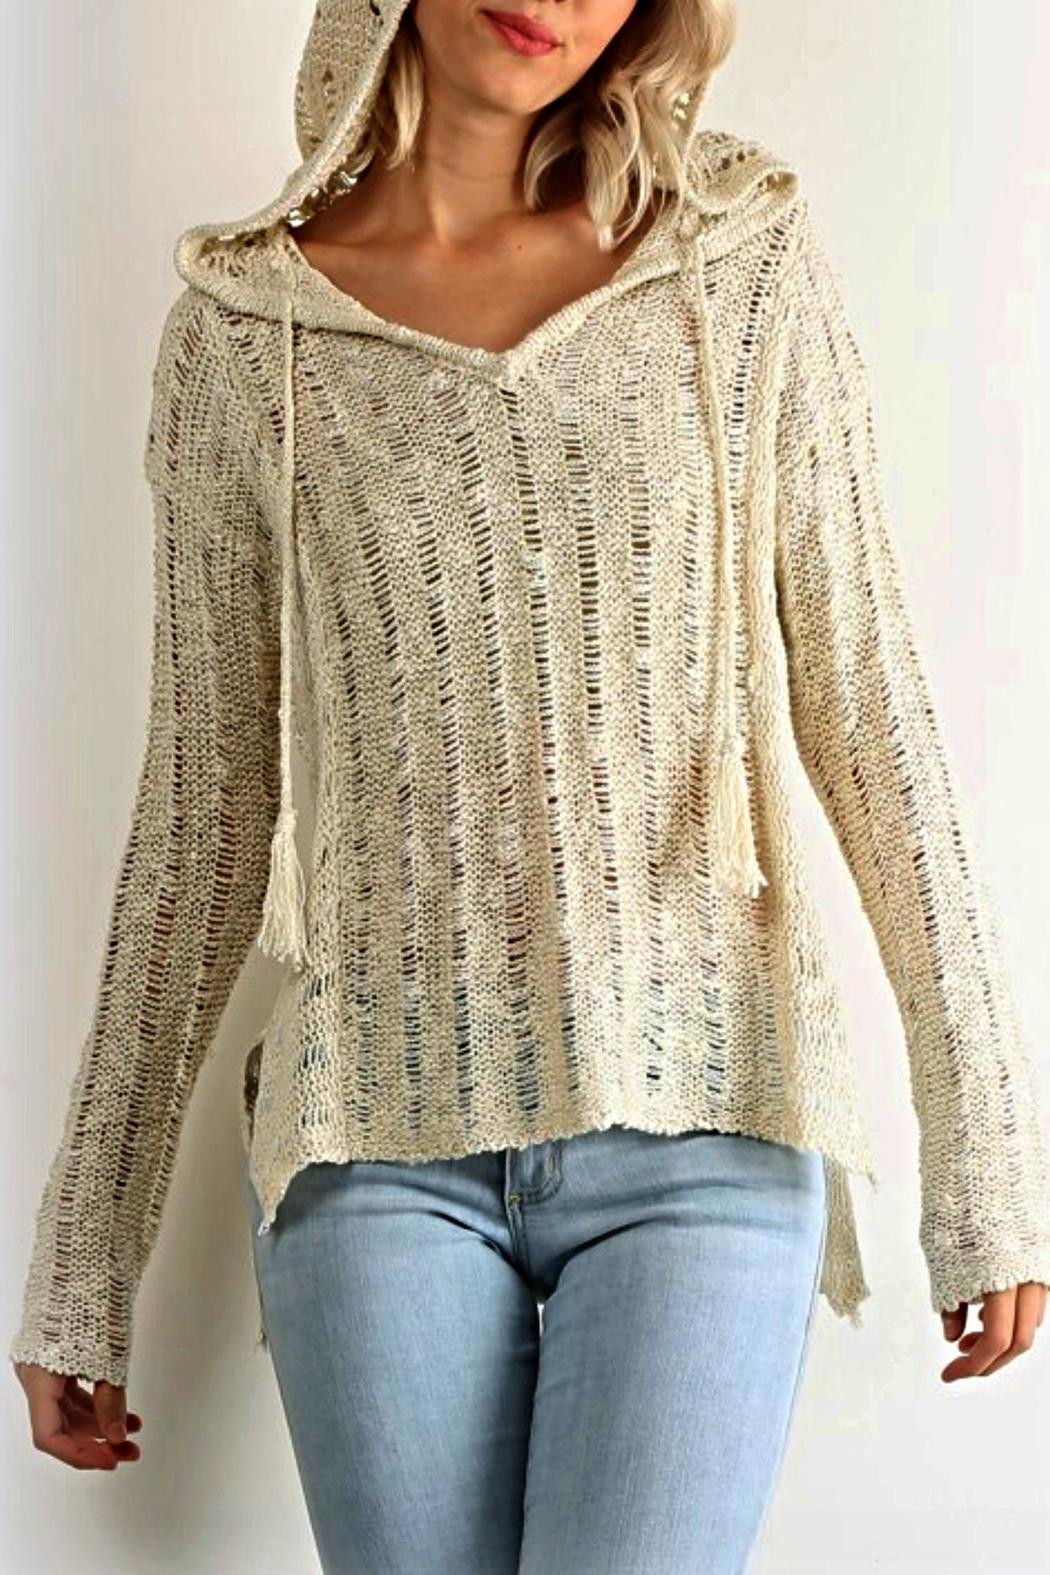 Crochet Hoodie Awesome Hem & Thread Crochet Hoo Sweater From Chicago by What Of Awesome 43 Images Crochet Hoodie